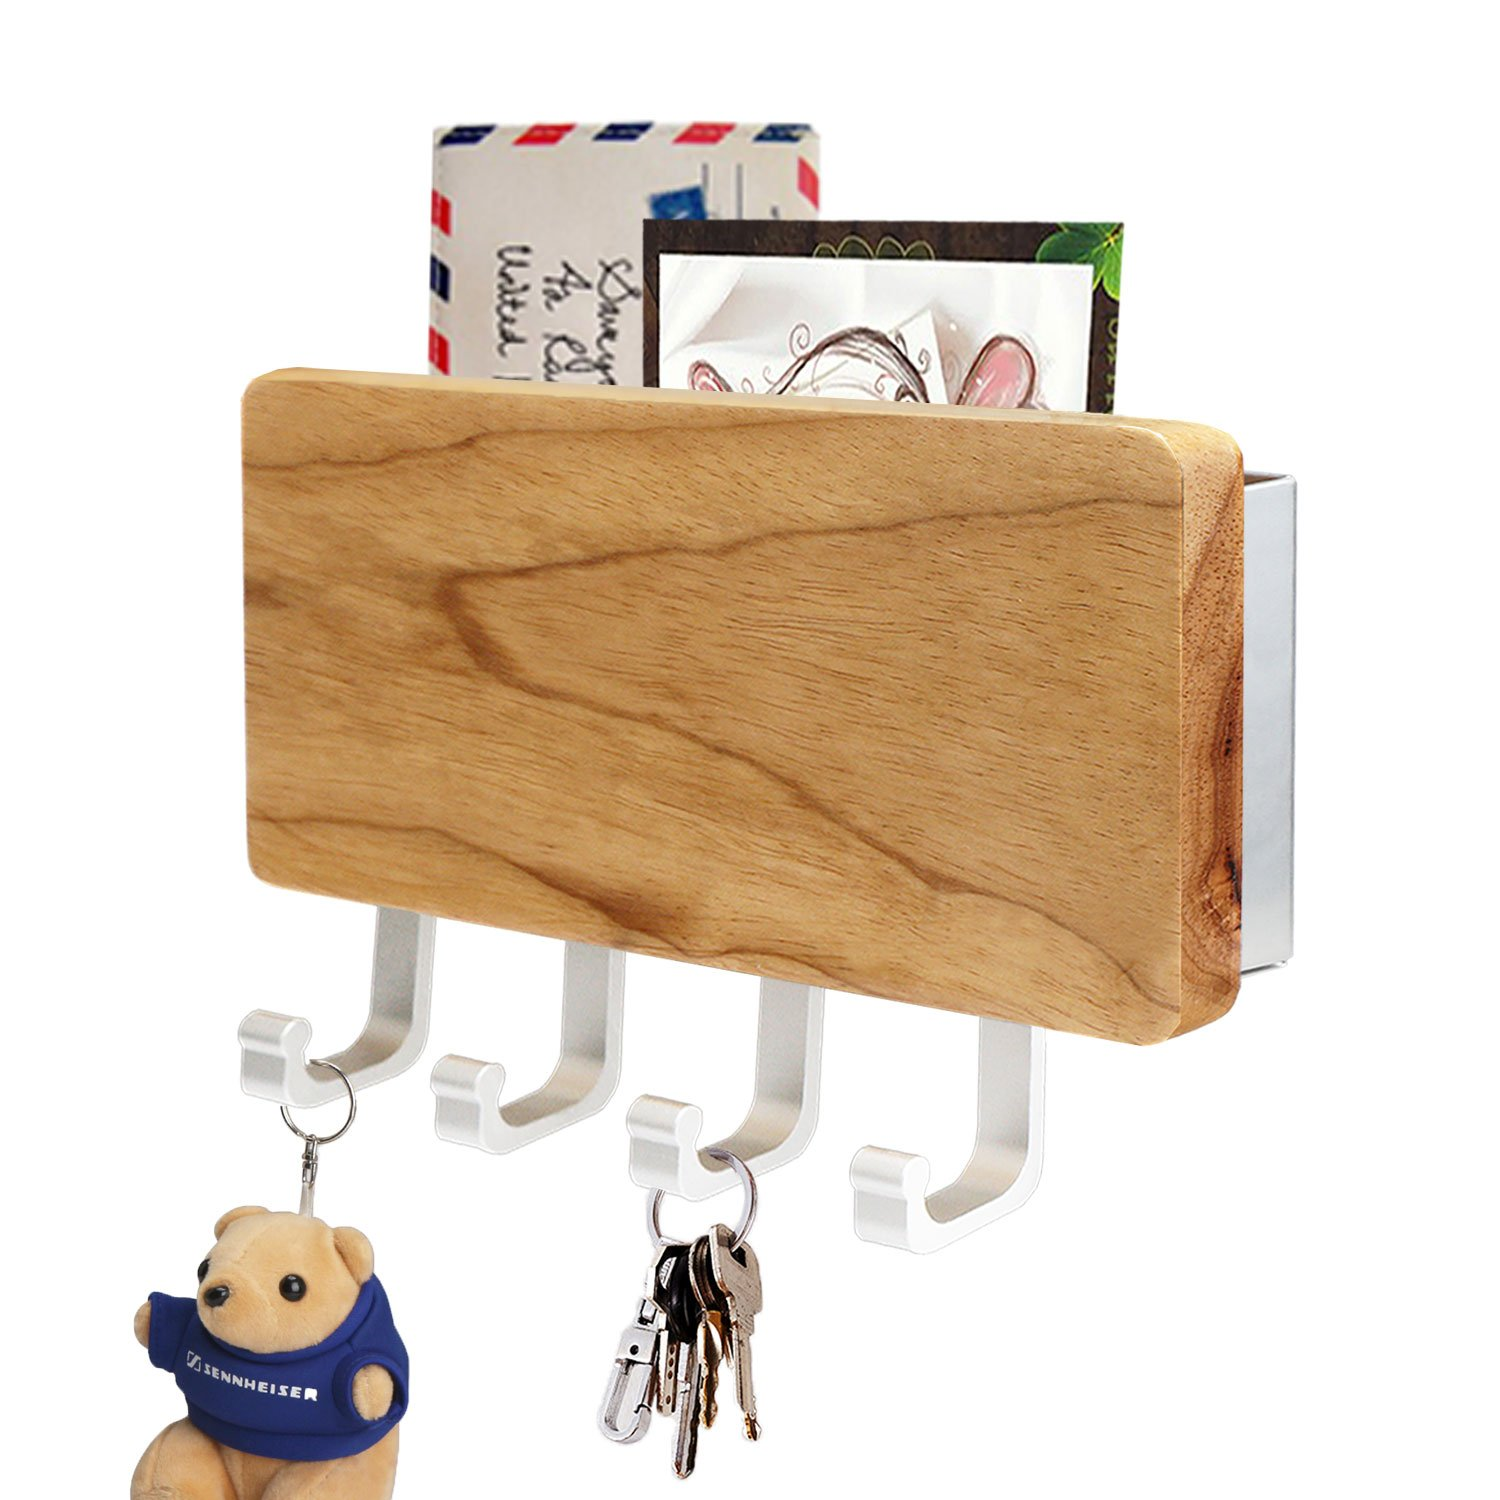 Ordinaire Get Quotations · Segarty Wooden Key Rack Organizer With 4 Hooks, Mail  Letter Holder Wall Mounted Perfect For